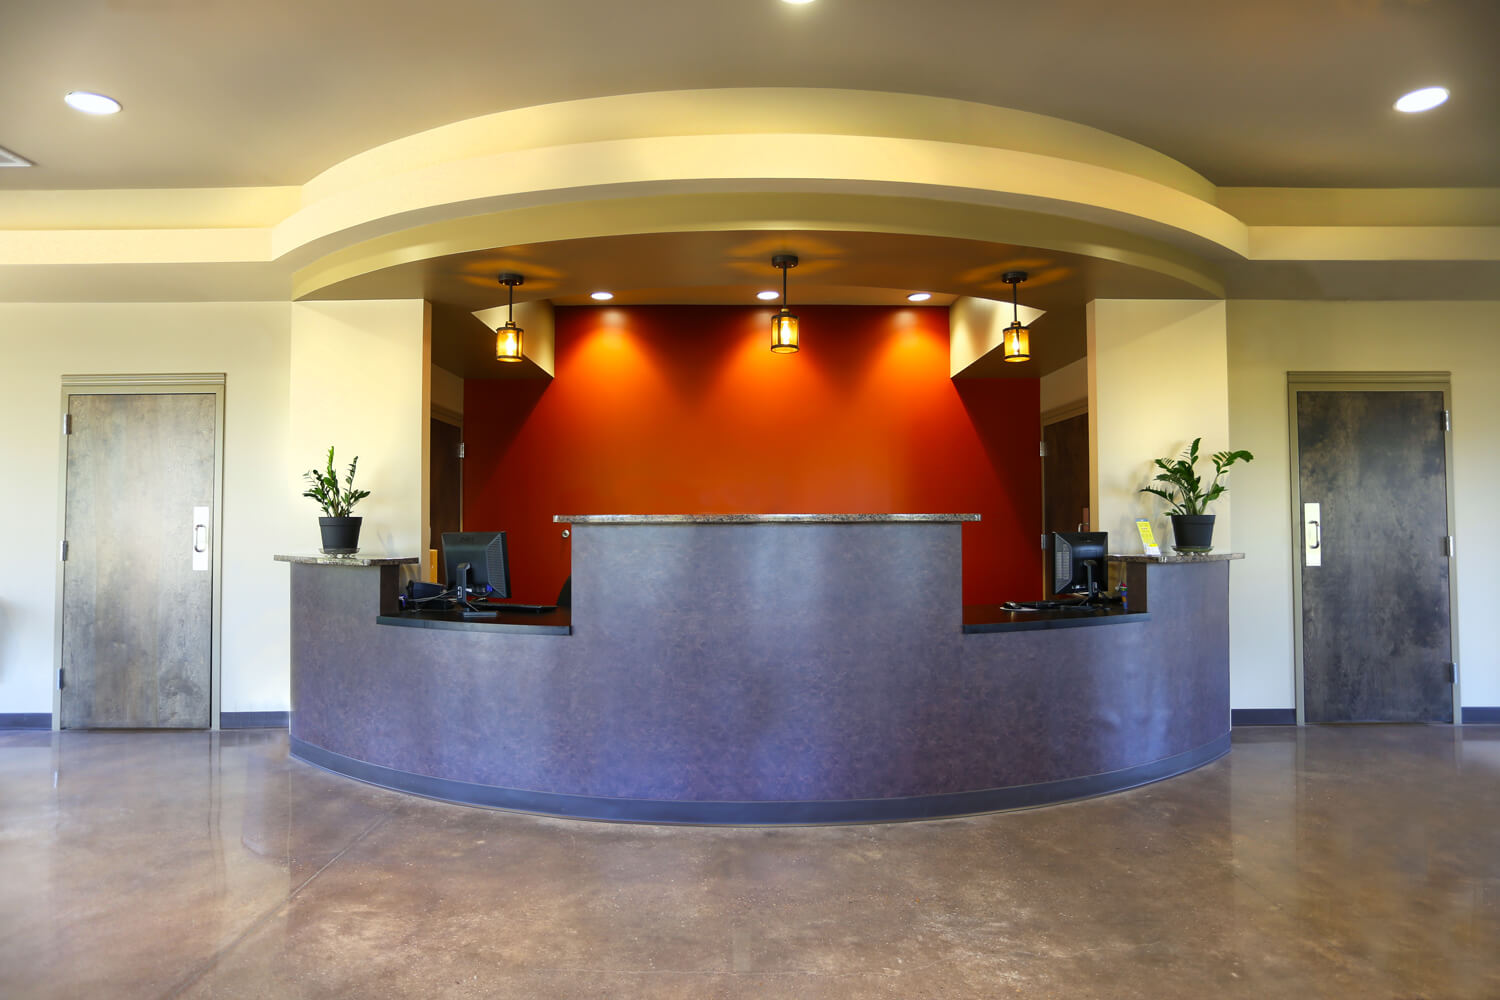 Troy Family Medicine Interior Reception Desk - Designed by Foshee Architecture